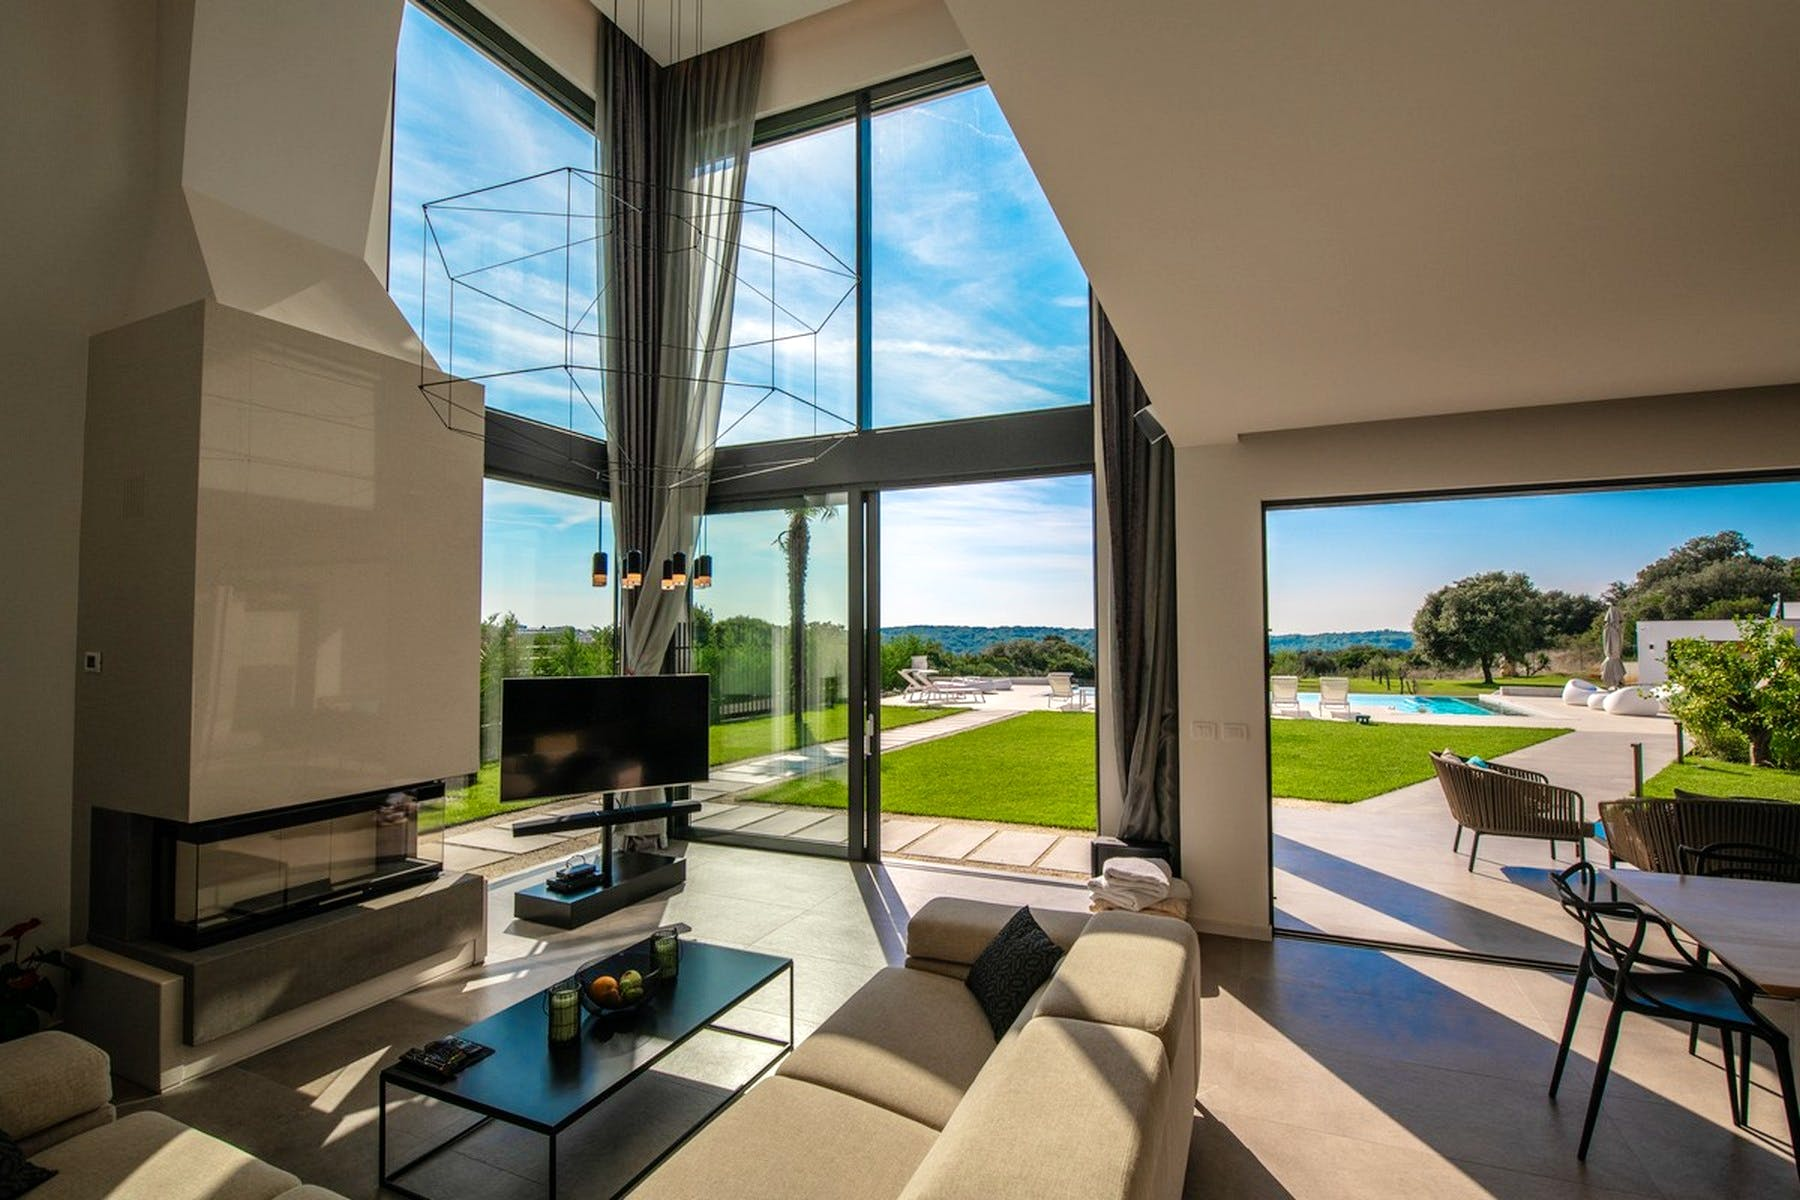 Large glass surfaces for the natural light to come in